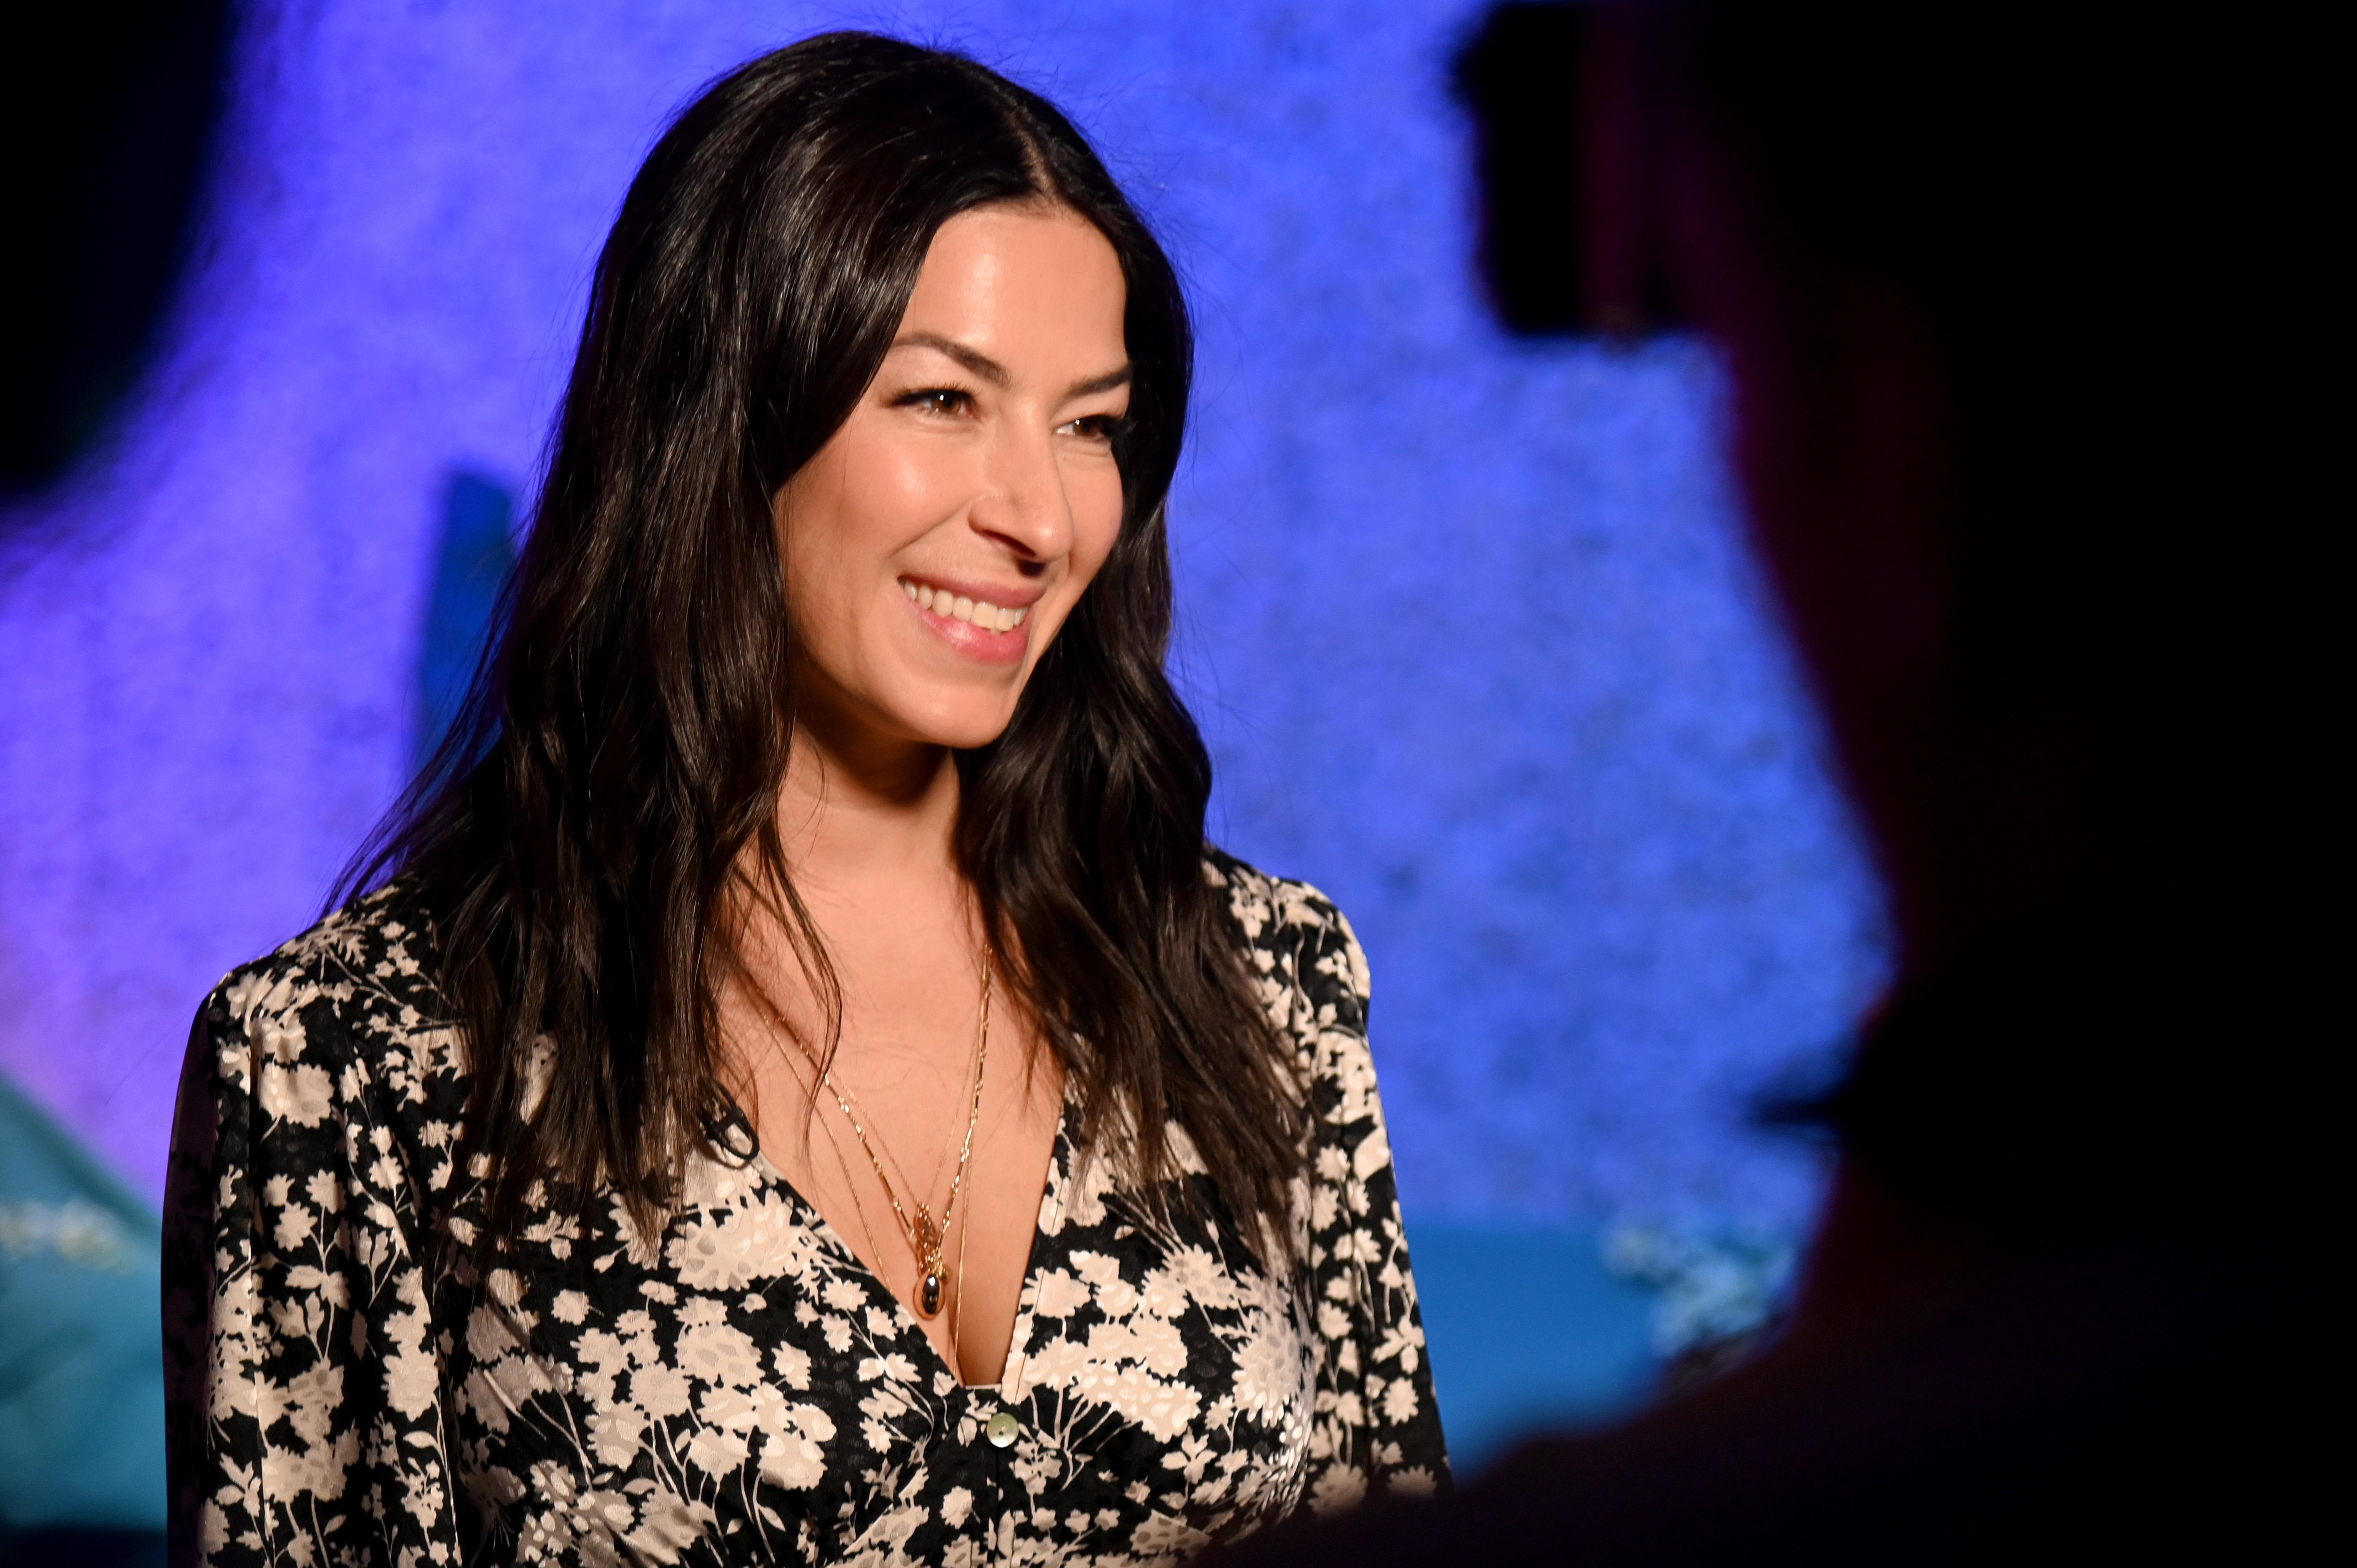 Rebecca Minkoff on VC funding for women amid coronavirus: 'It's going to get worse before it gets better'